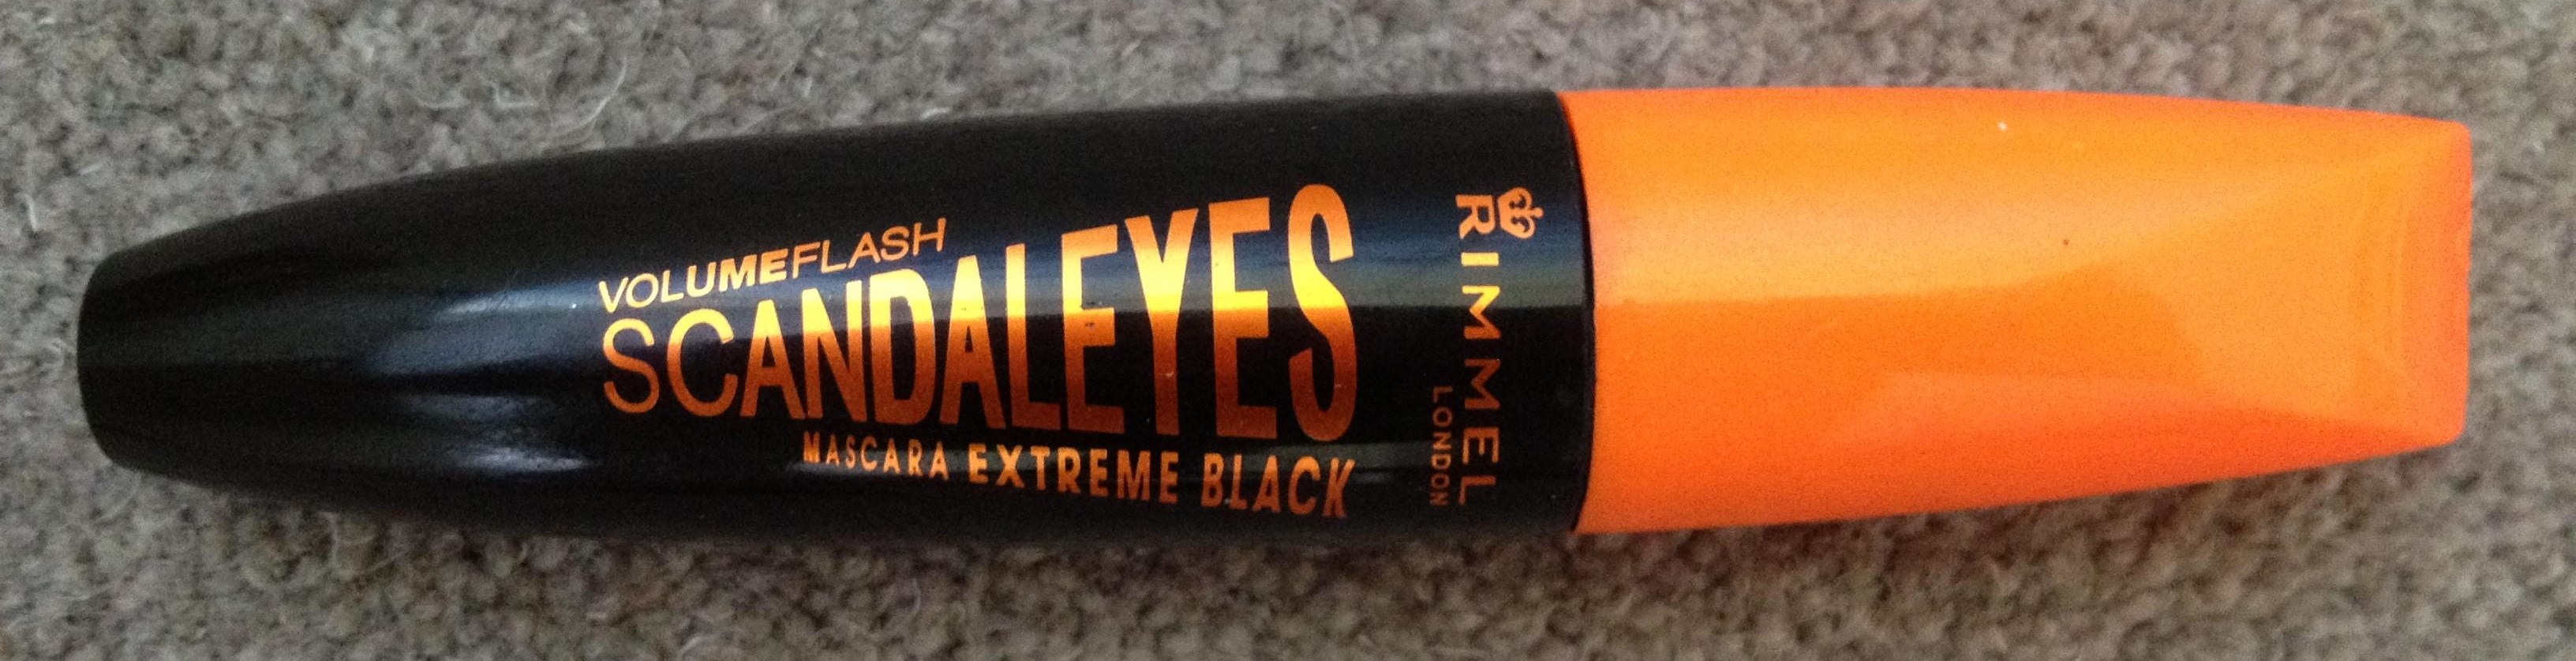 Rimmel Scandaleyes Mascara in Extreme Black: Review | Yesterface